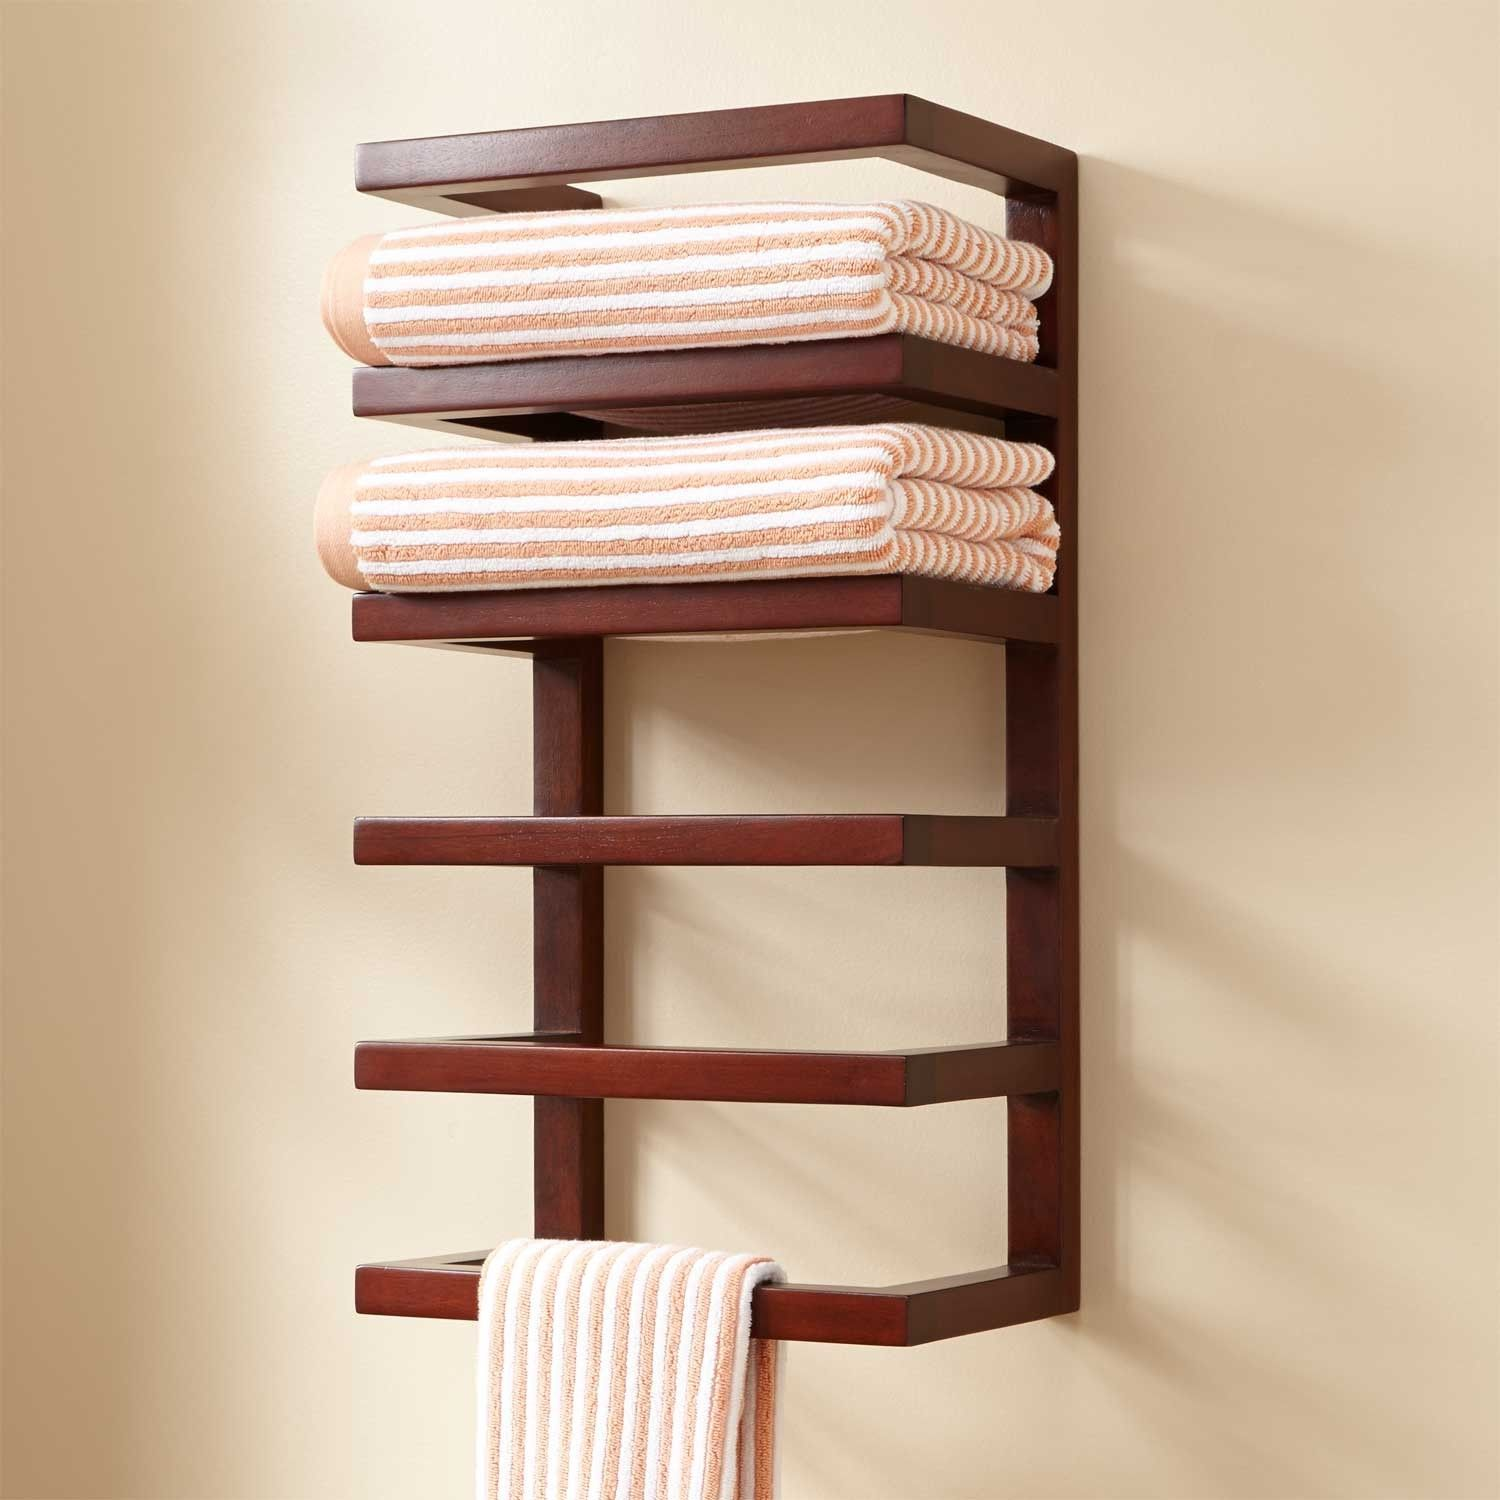 Mahogany hanging towel rack towel holders bathroom for Rack for bathroom accessories